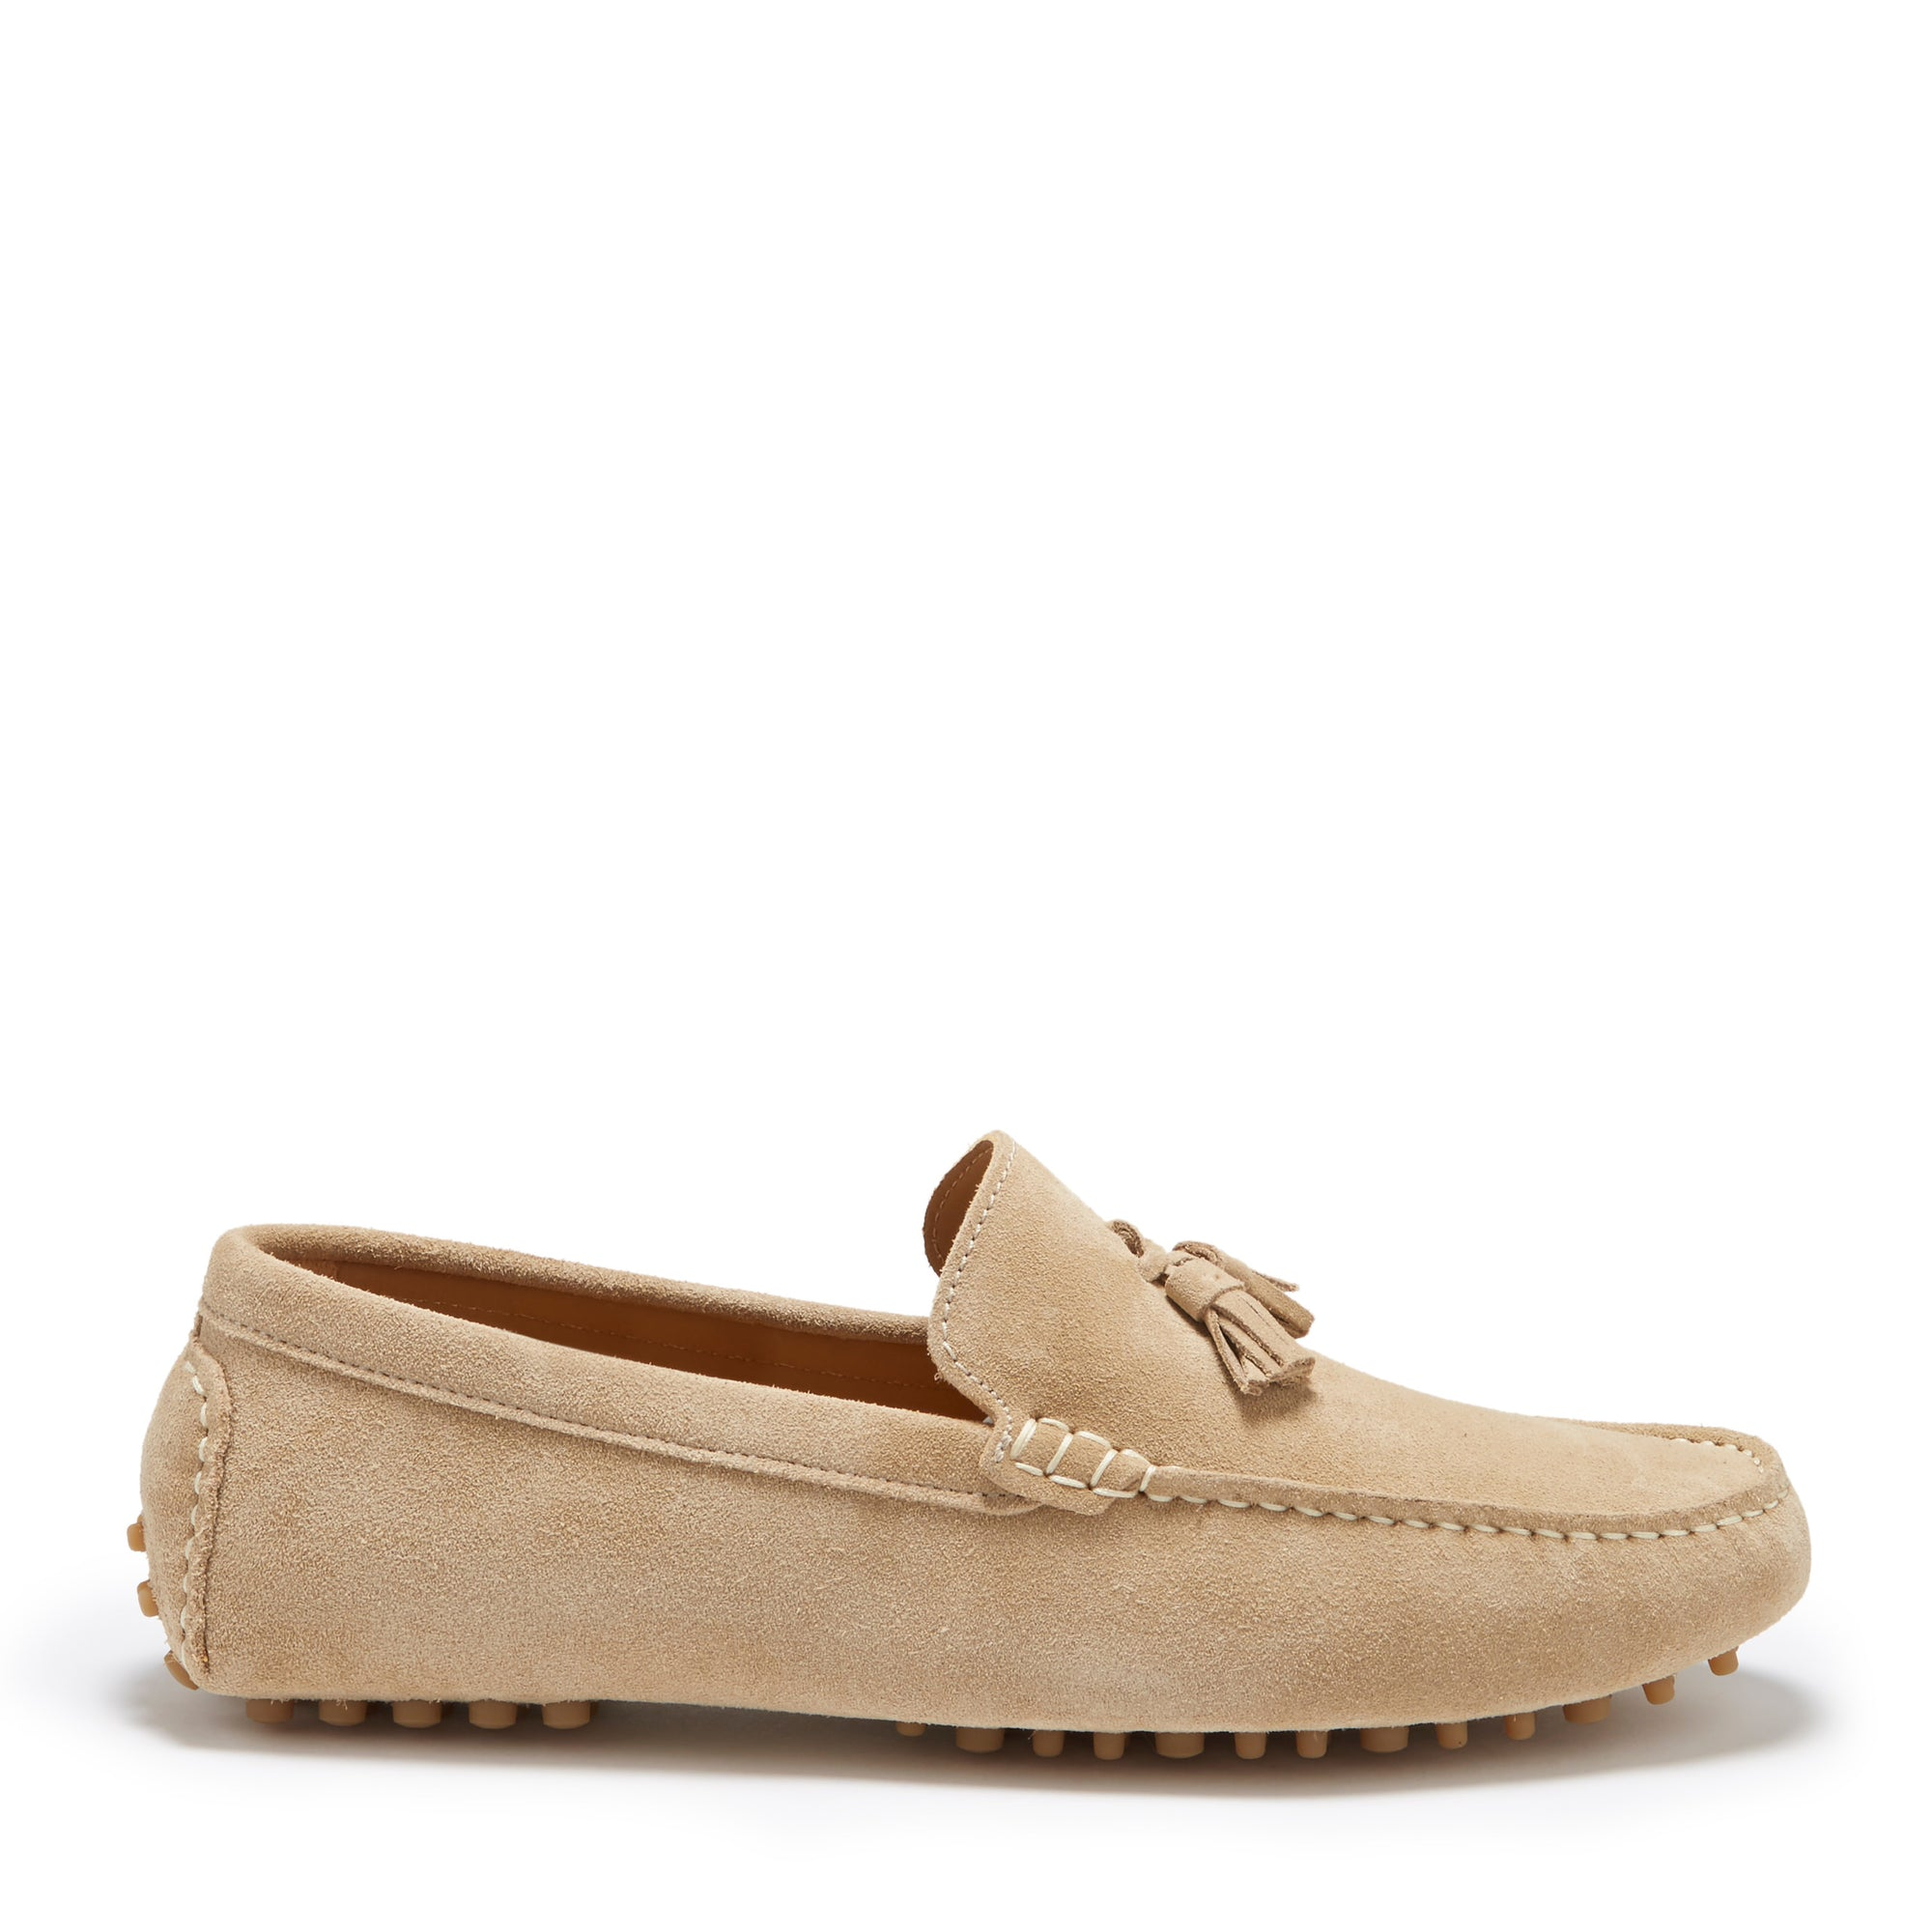 Tasselled Driving Loafer Taupe Suede Hugs & Co.